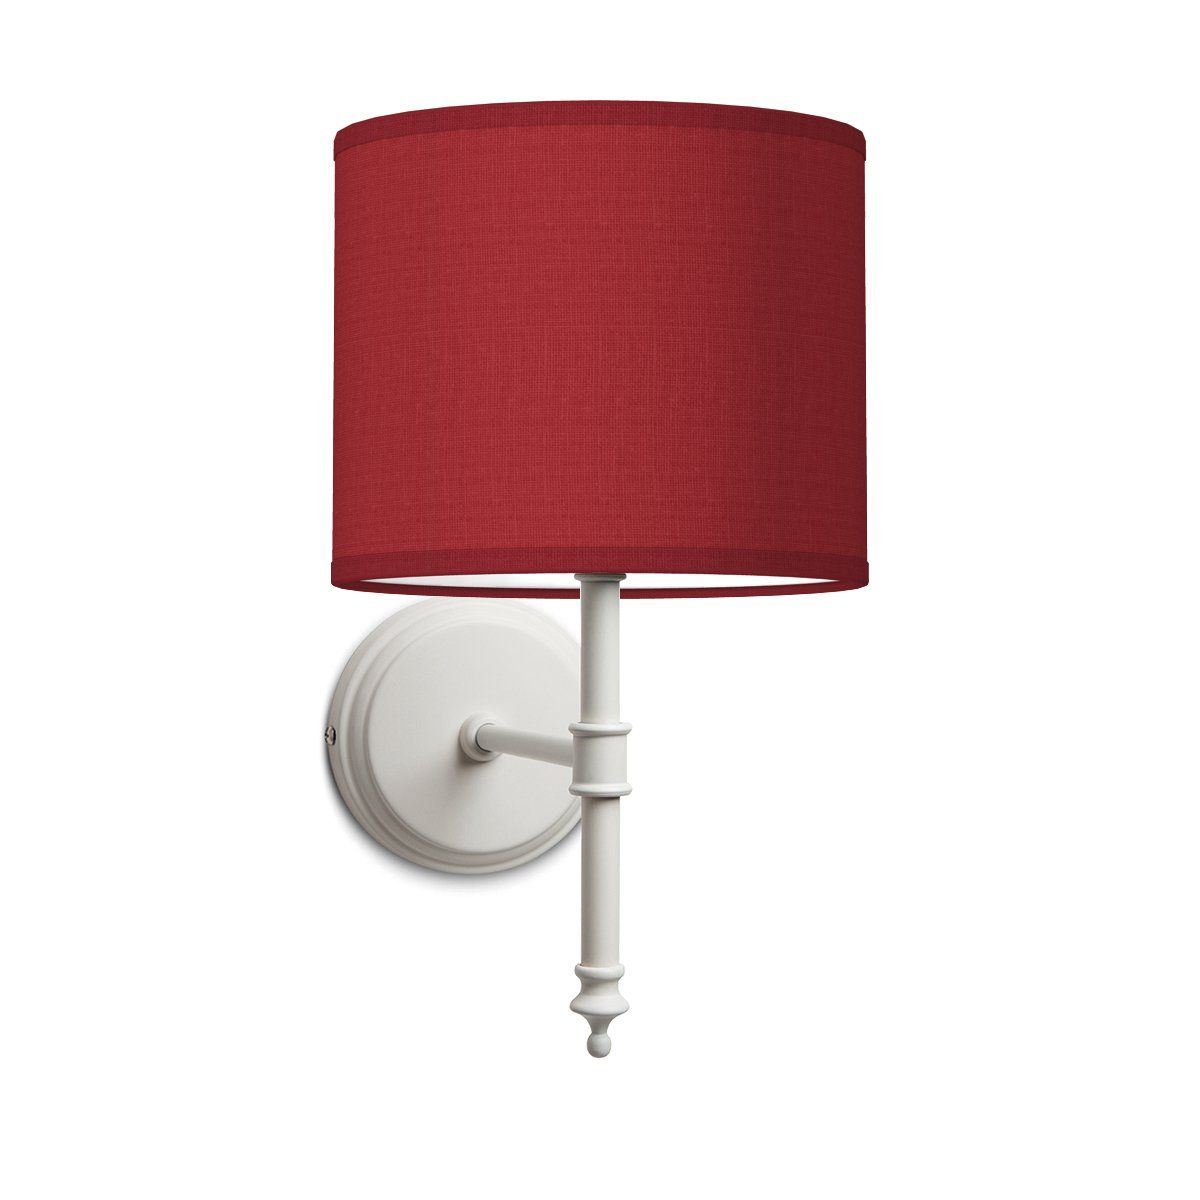 HOME SWEET HOME wandlamp baroc white bling Ø 20 cm - Pompeian red